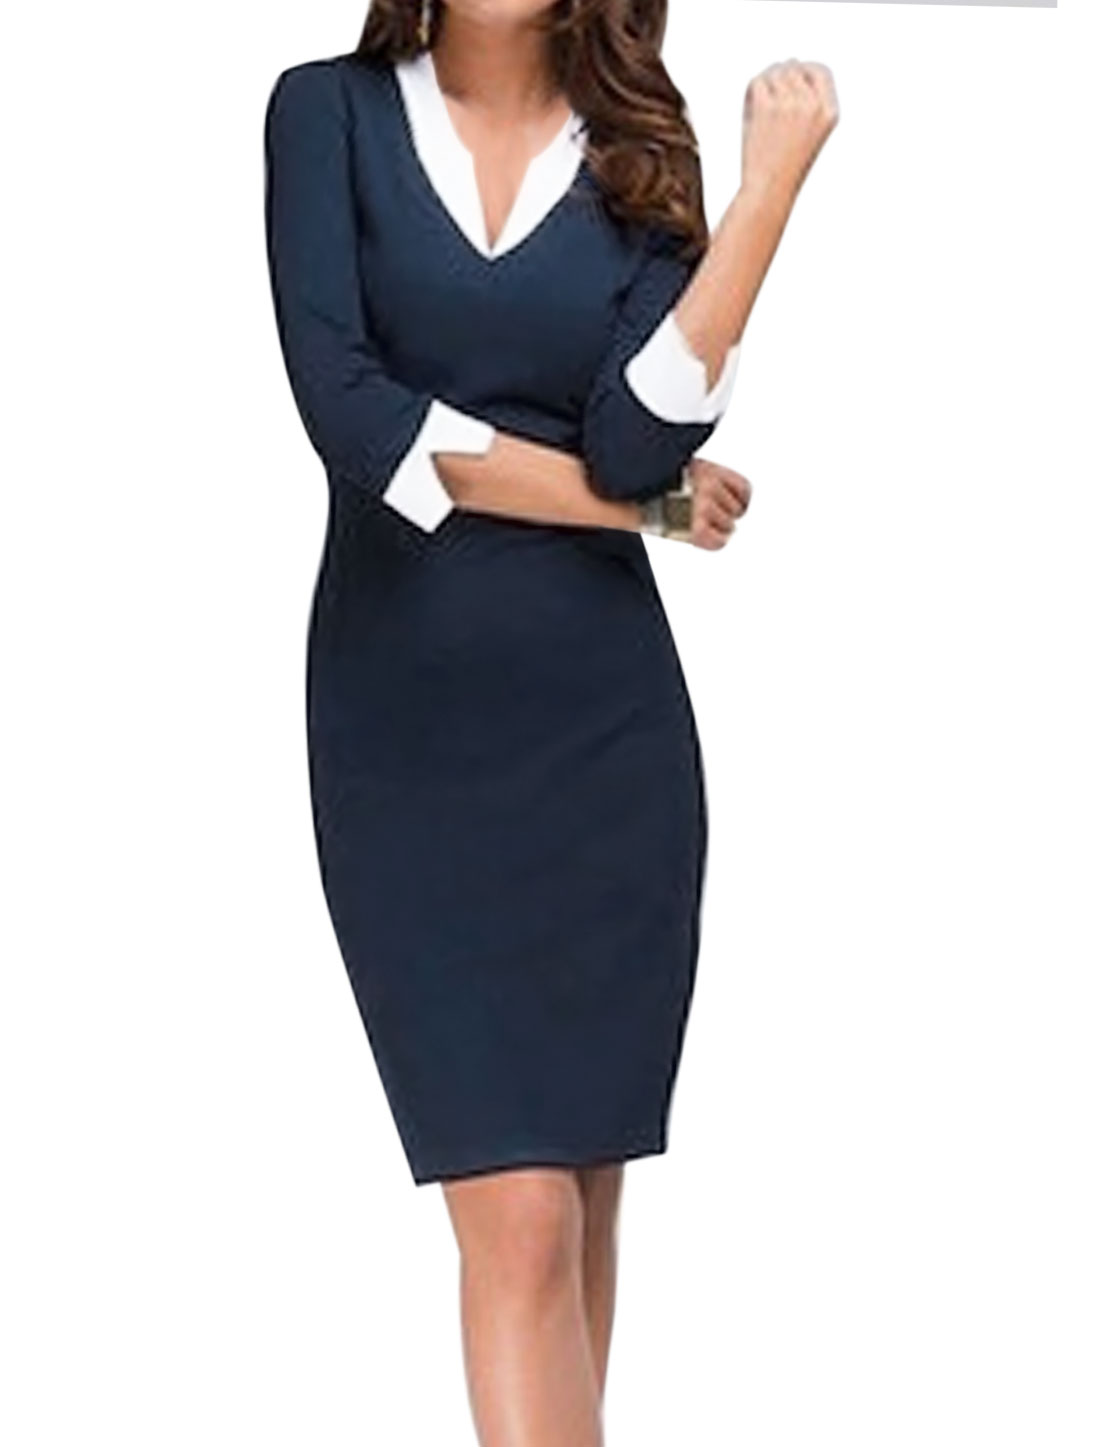 Women 3/4 Sleeves Layered Contrast Color Pencil Dress Blue L